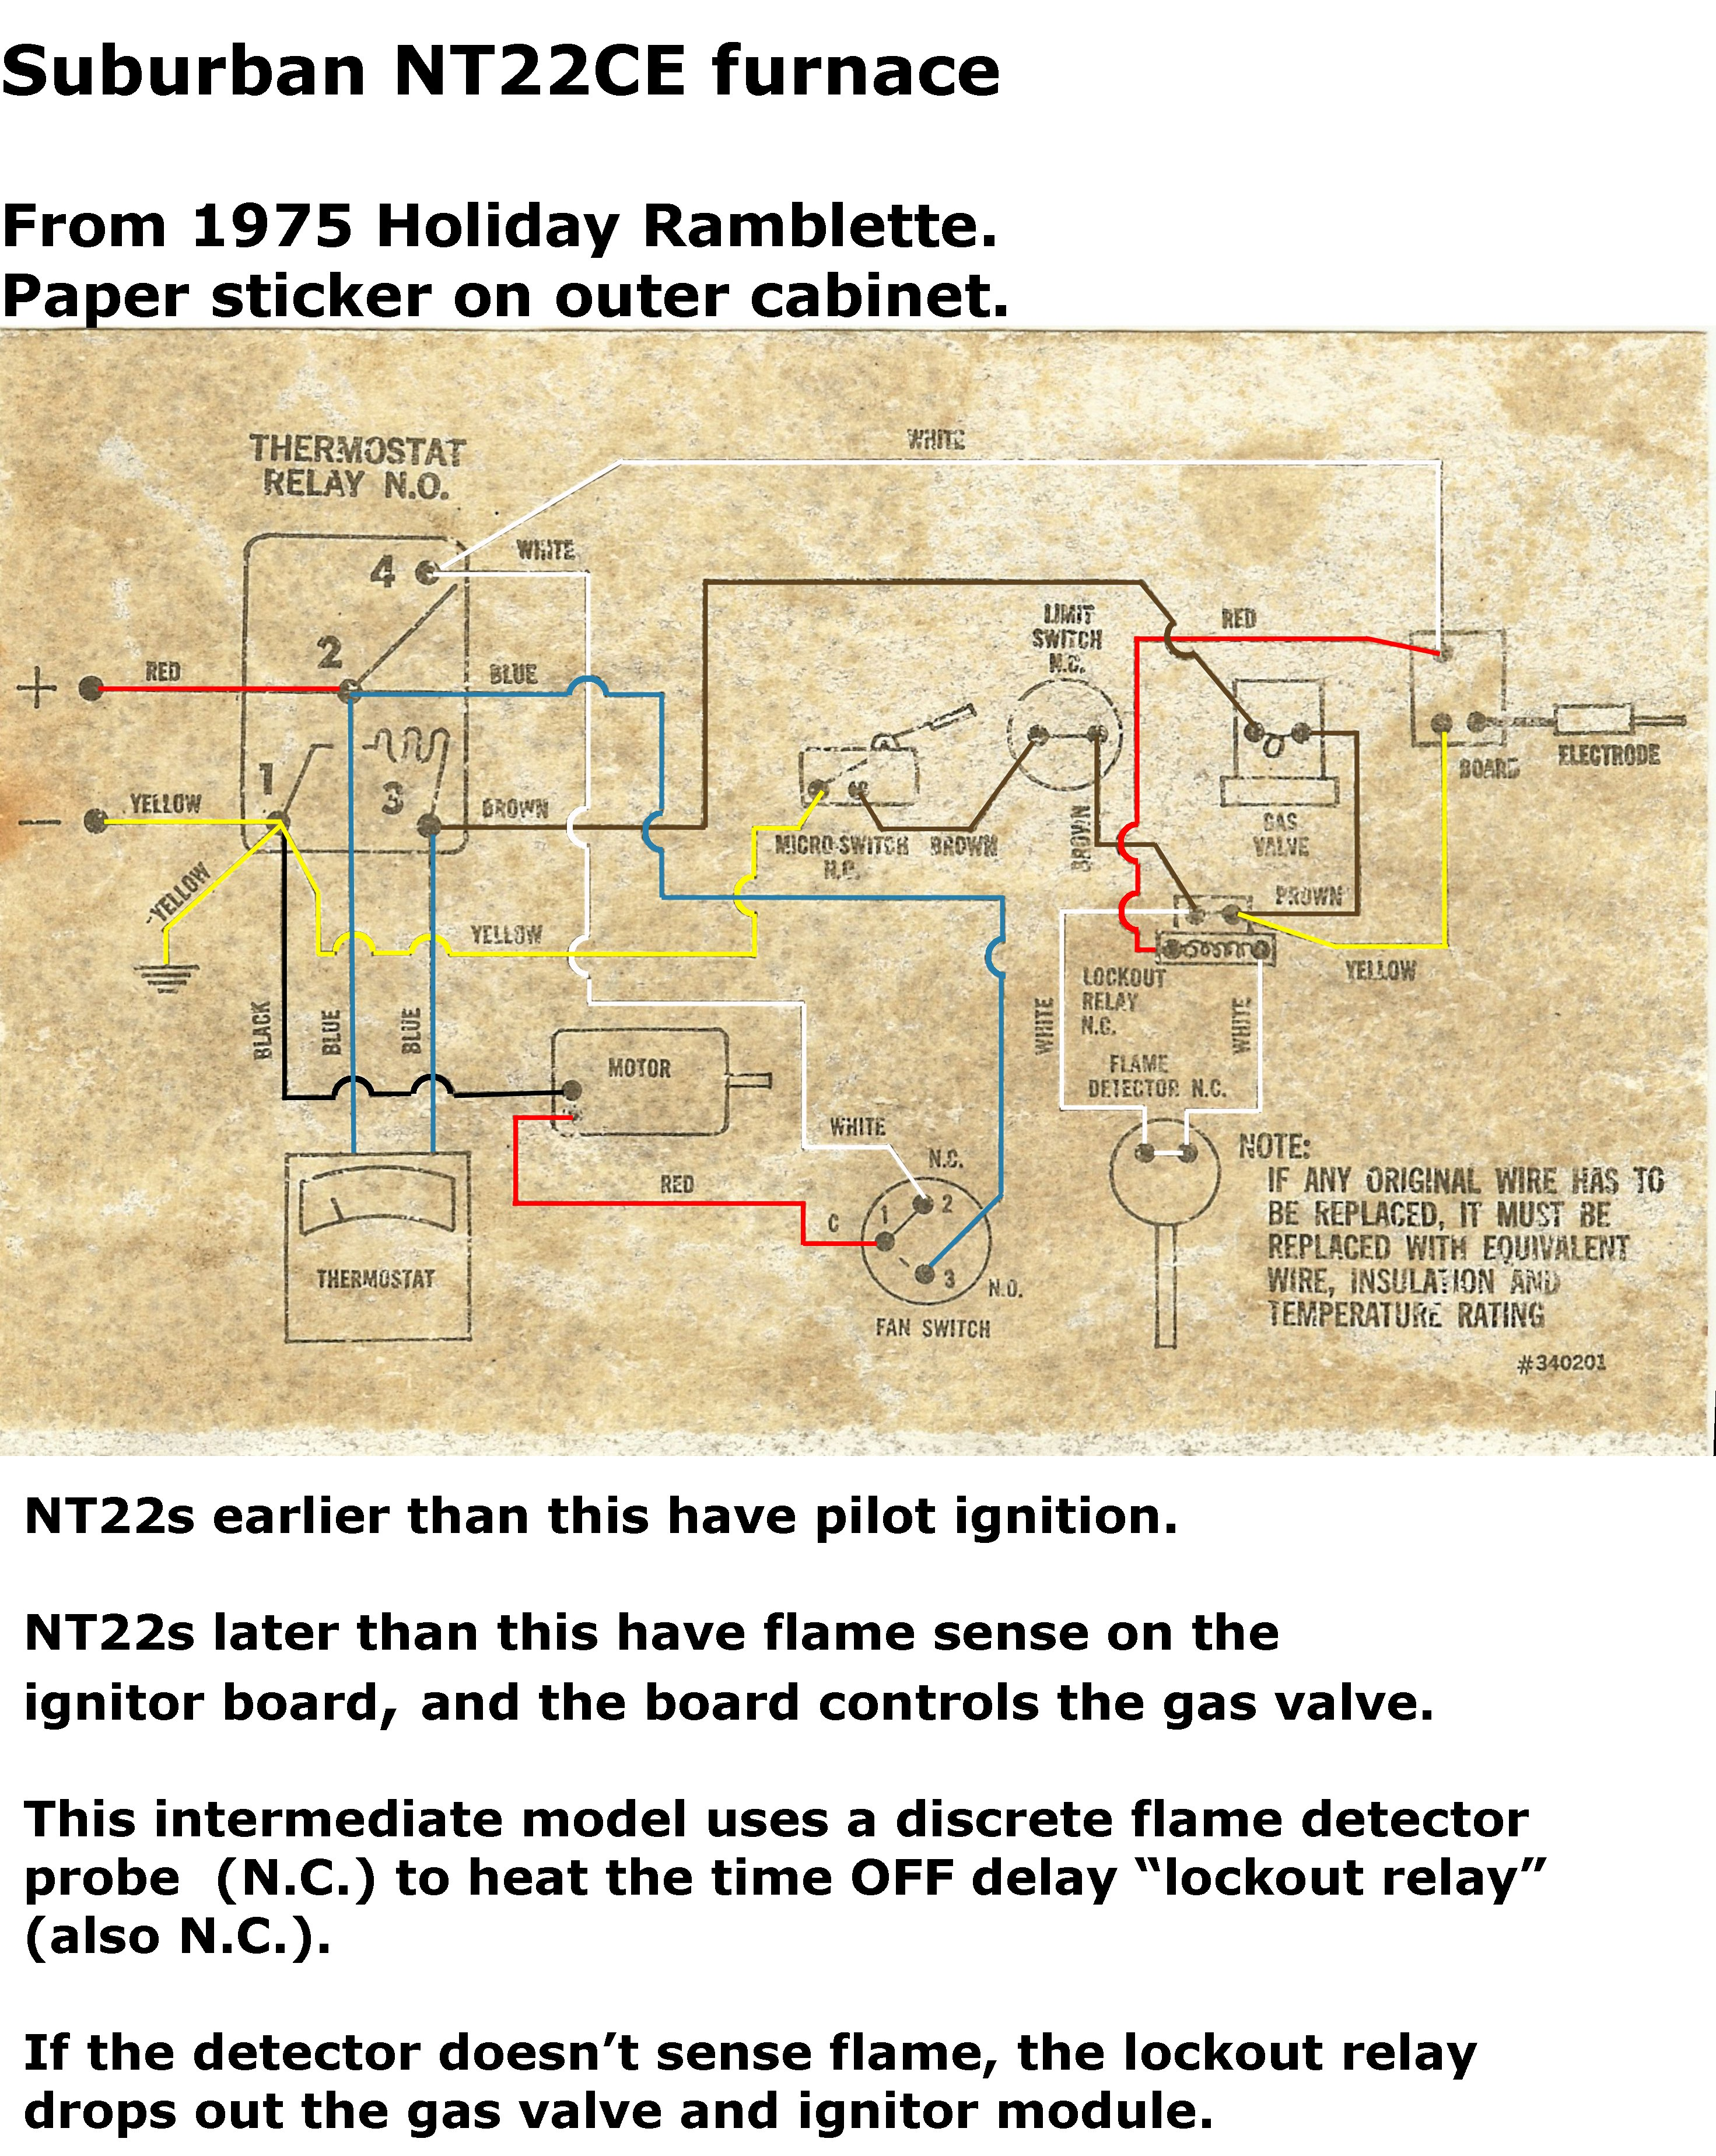 NT22_02 1b suburban furnace wiring diagram furnace thermostat wiring diagram suburban rv furnace wiring diagram at readyjetset.co